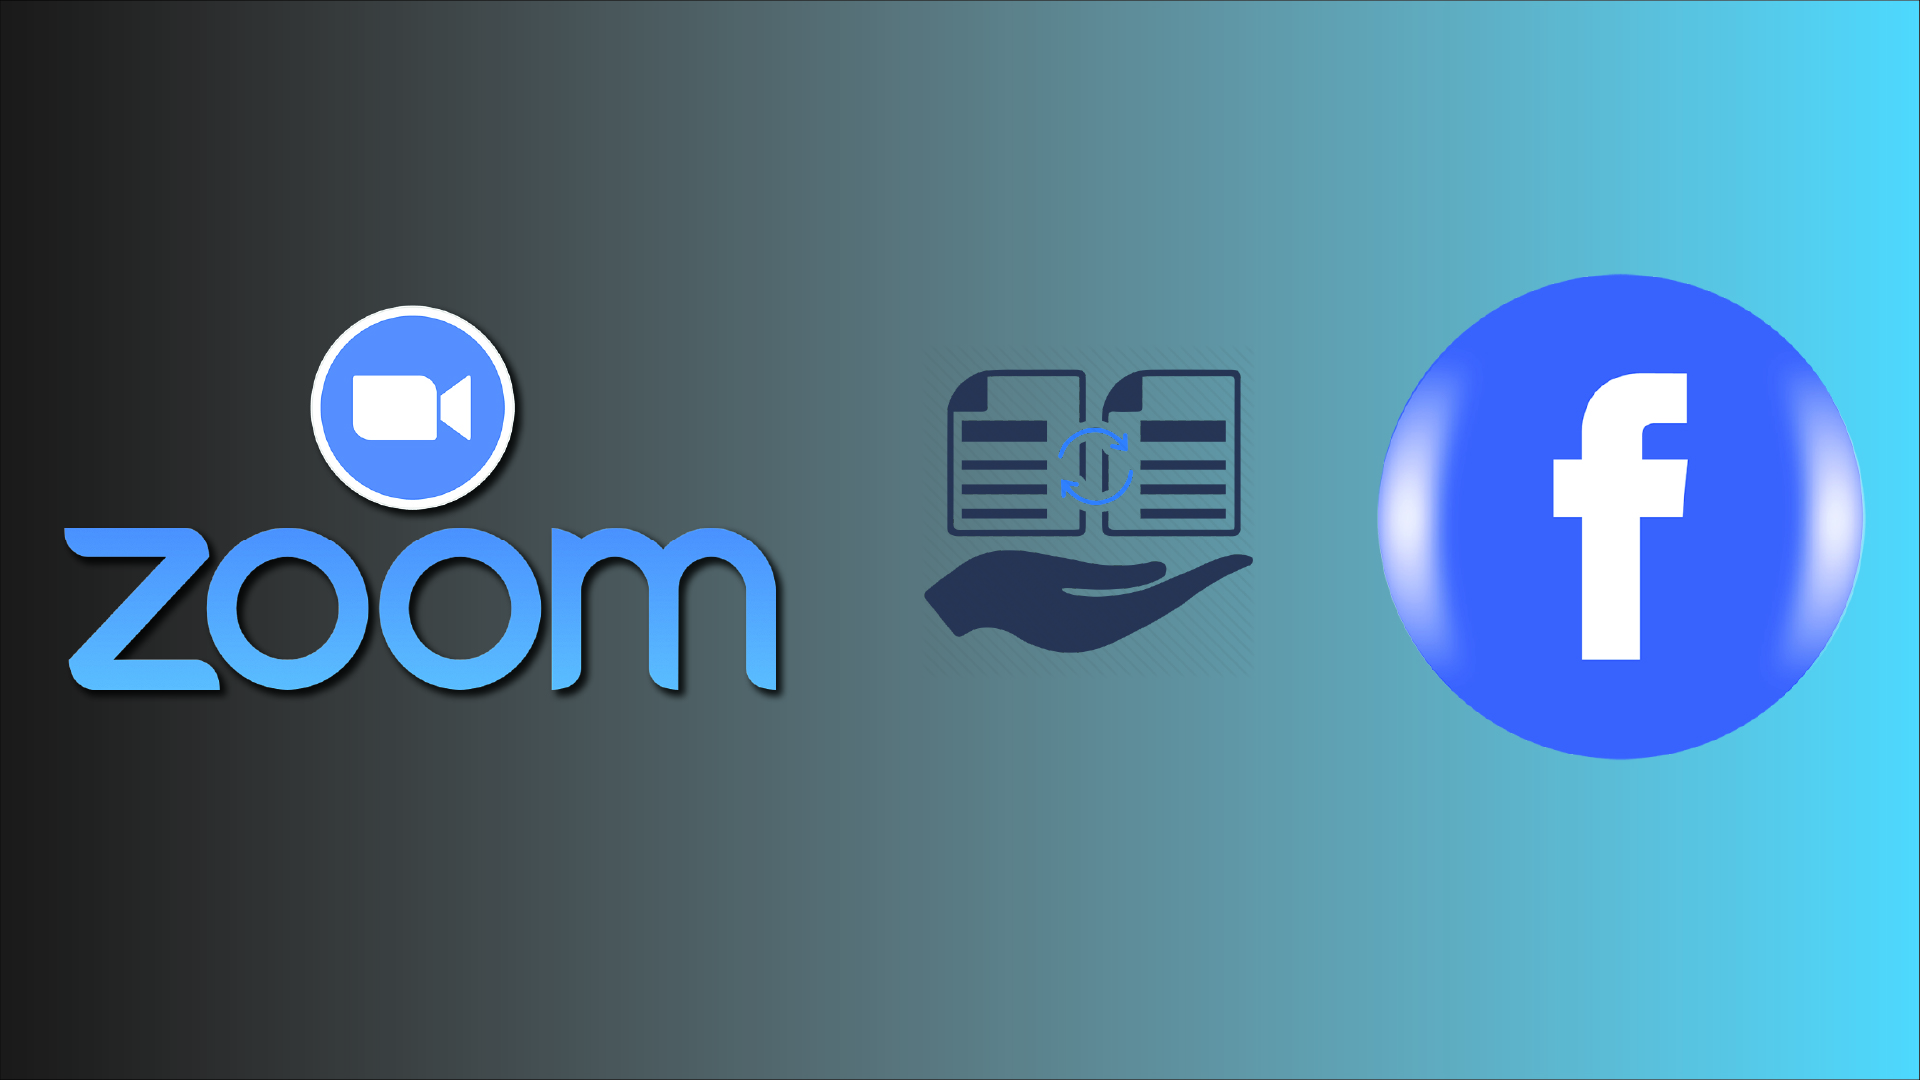 Zoom sends data to fb